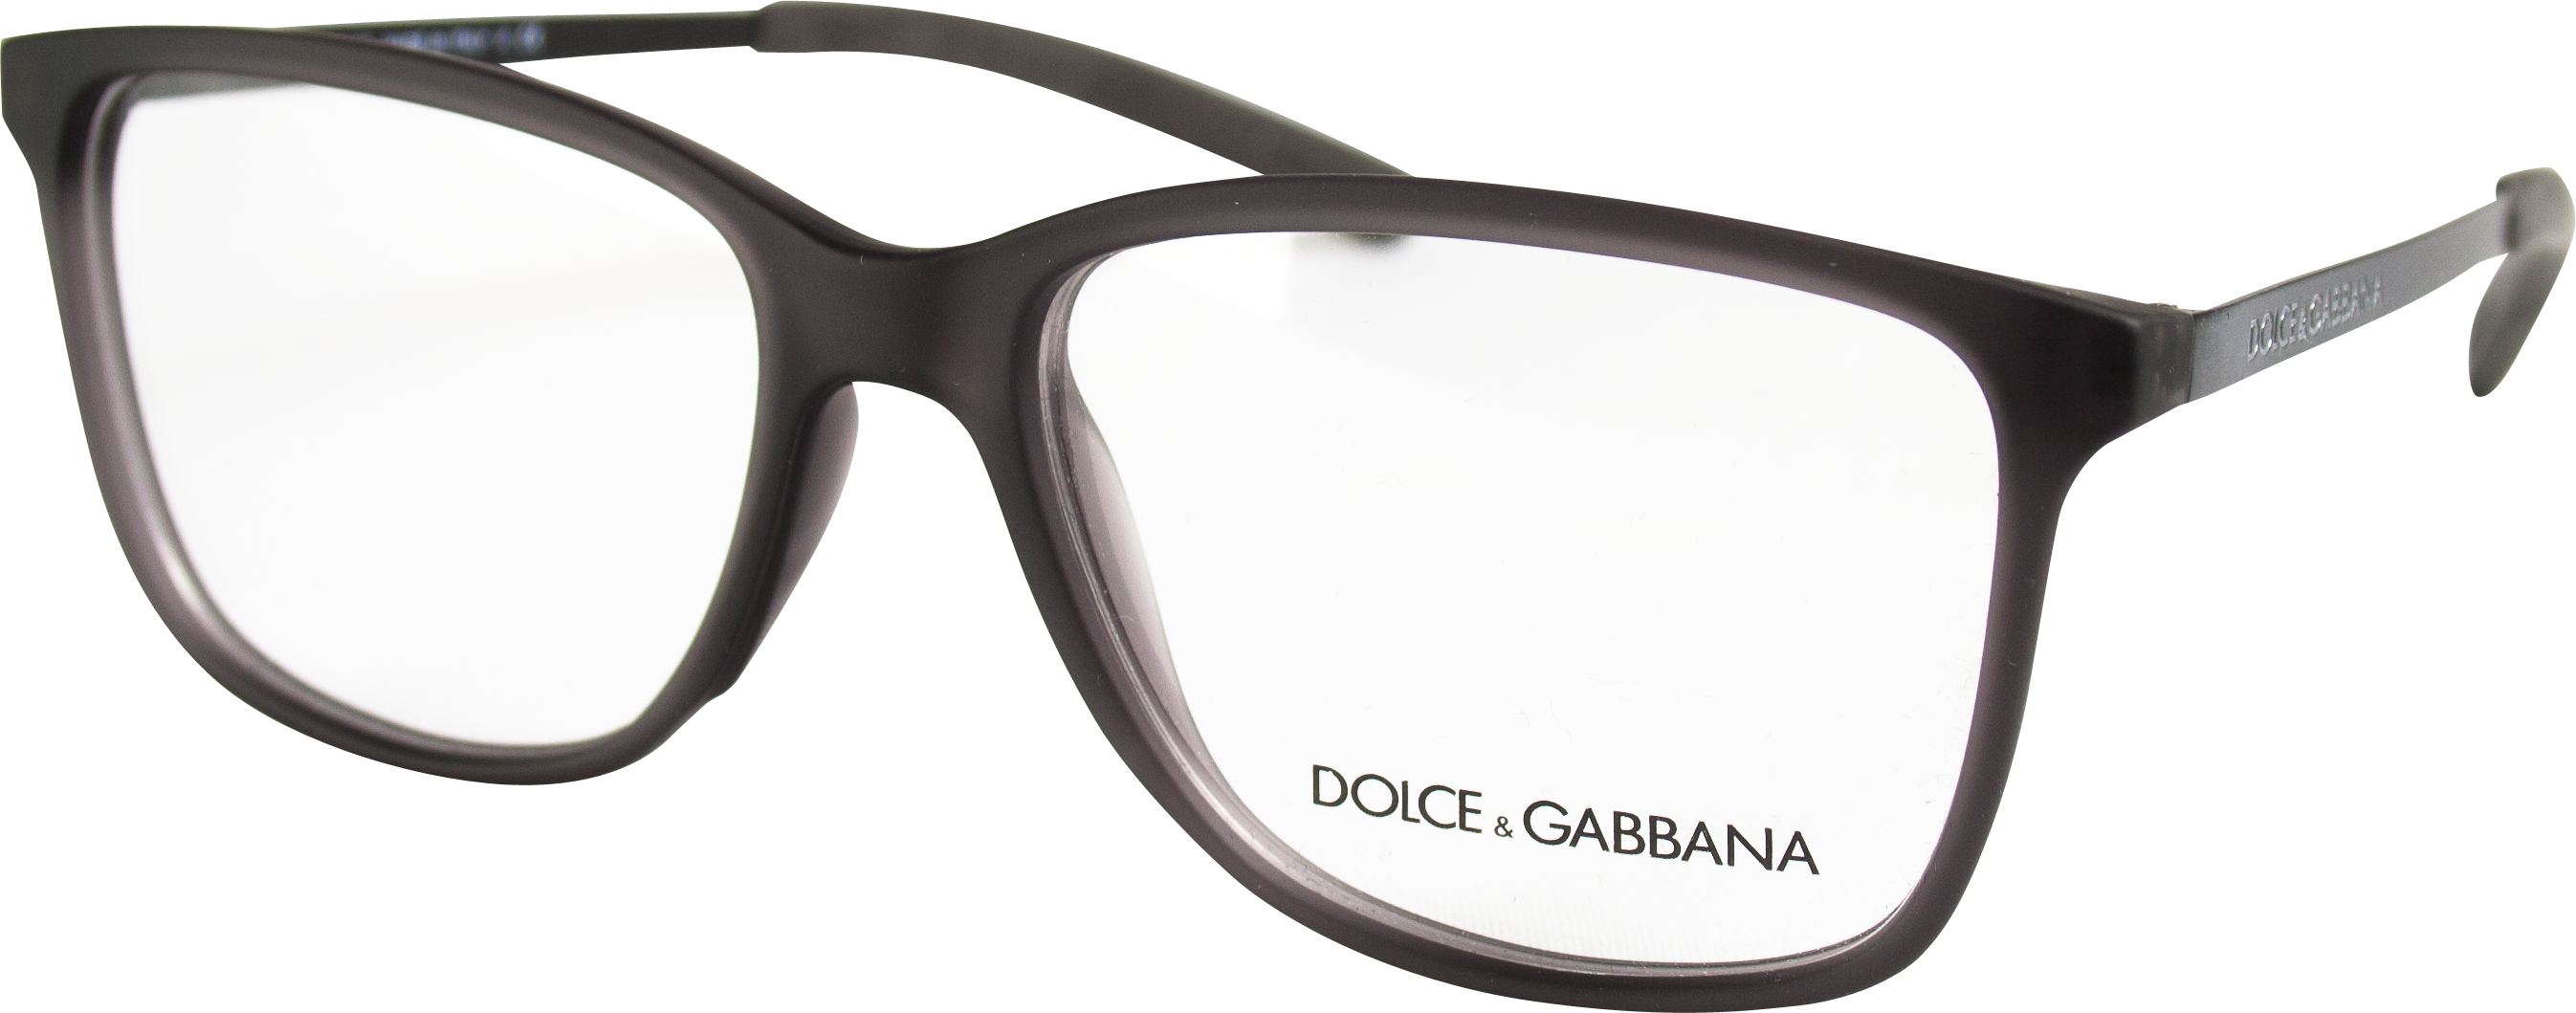 sonnenbrille damen dolce gabbana damen dolce gabbana sonnenbrille damen 6bka2752 kaufen. Black Bedroom Furniture Sets. Home Design Ideas